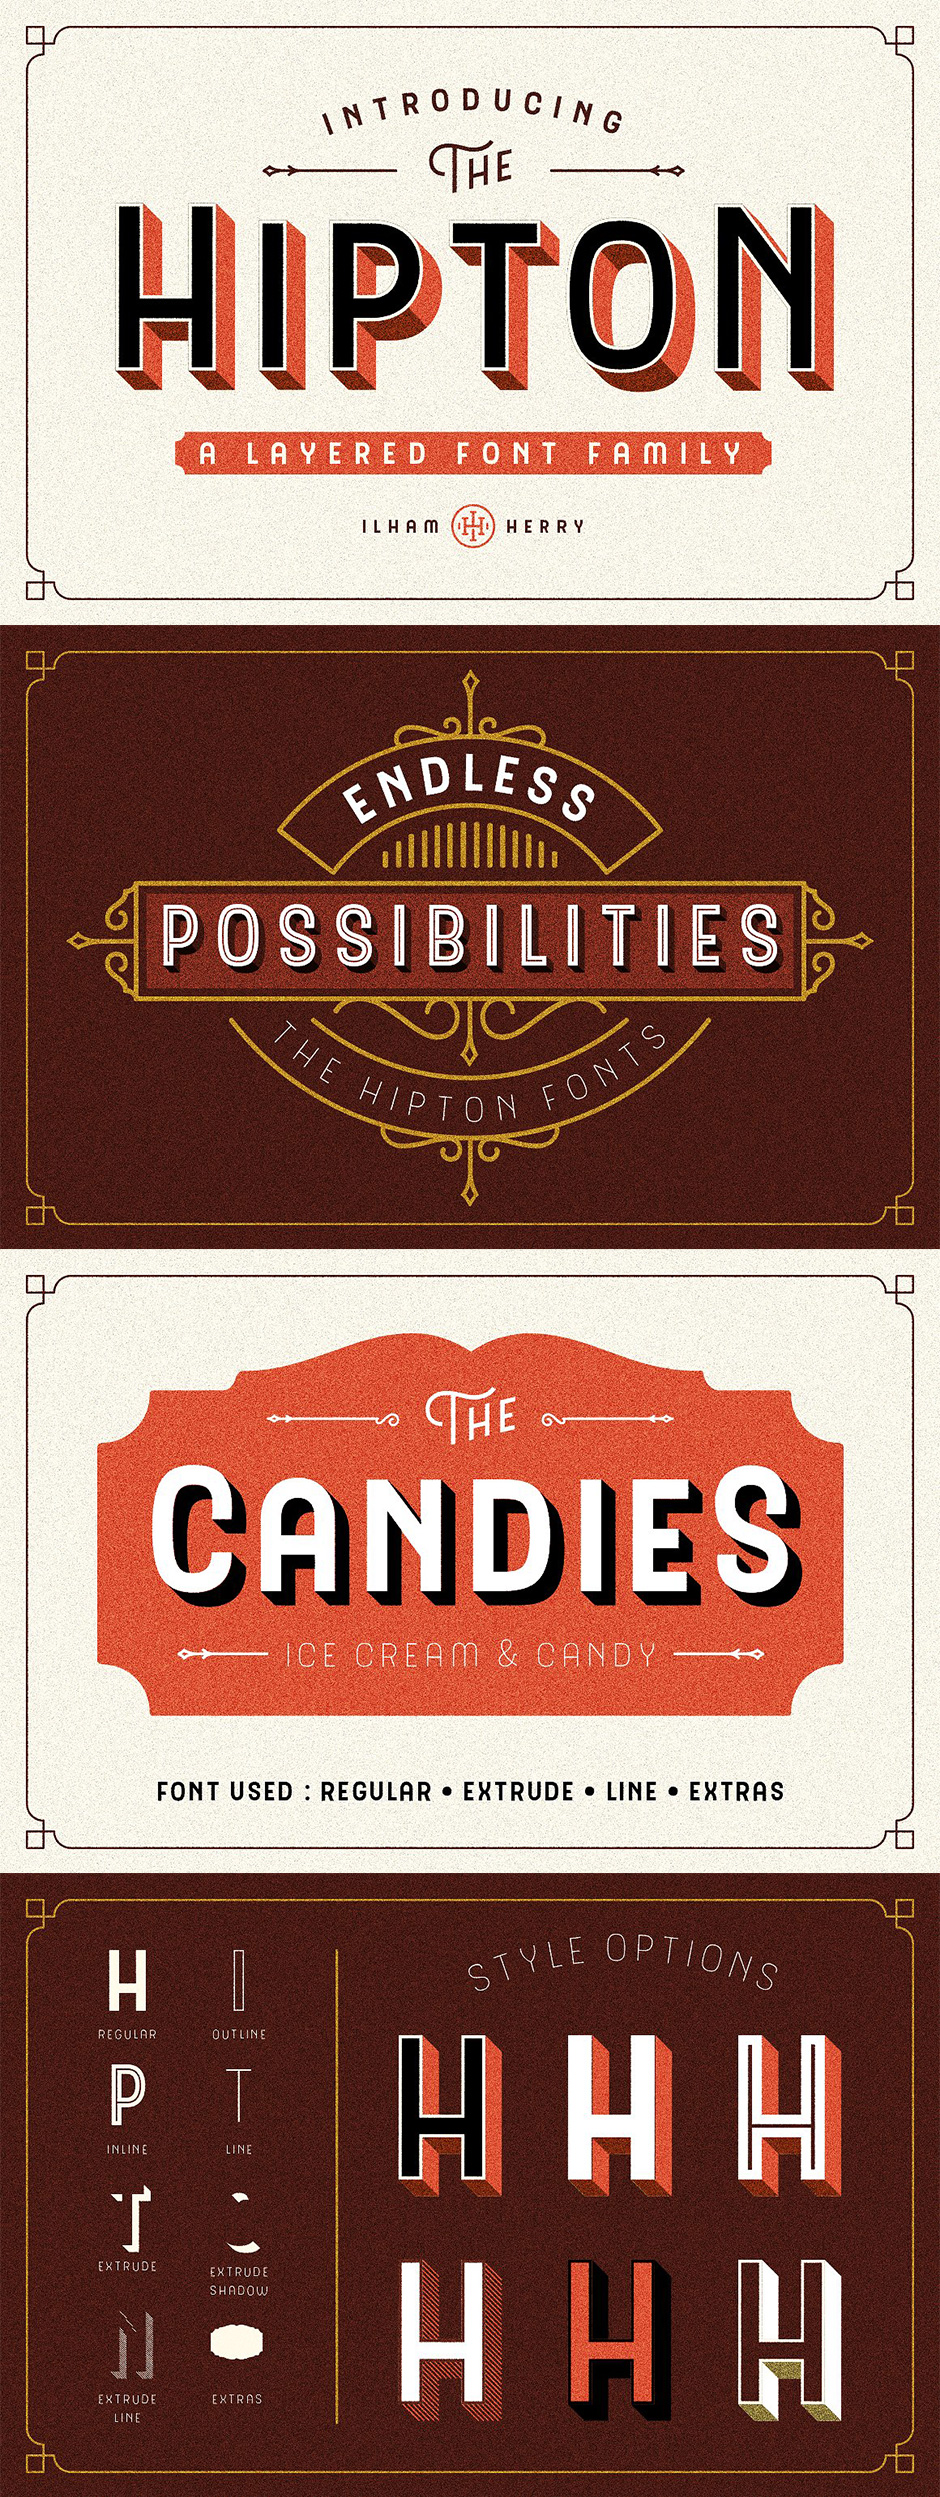 Definitive Fonts Bundle Hipton